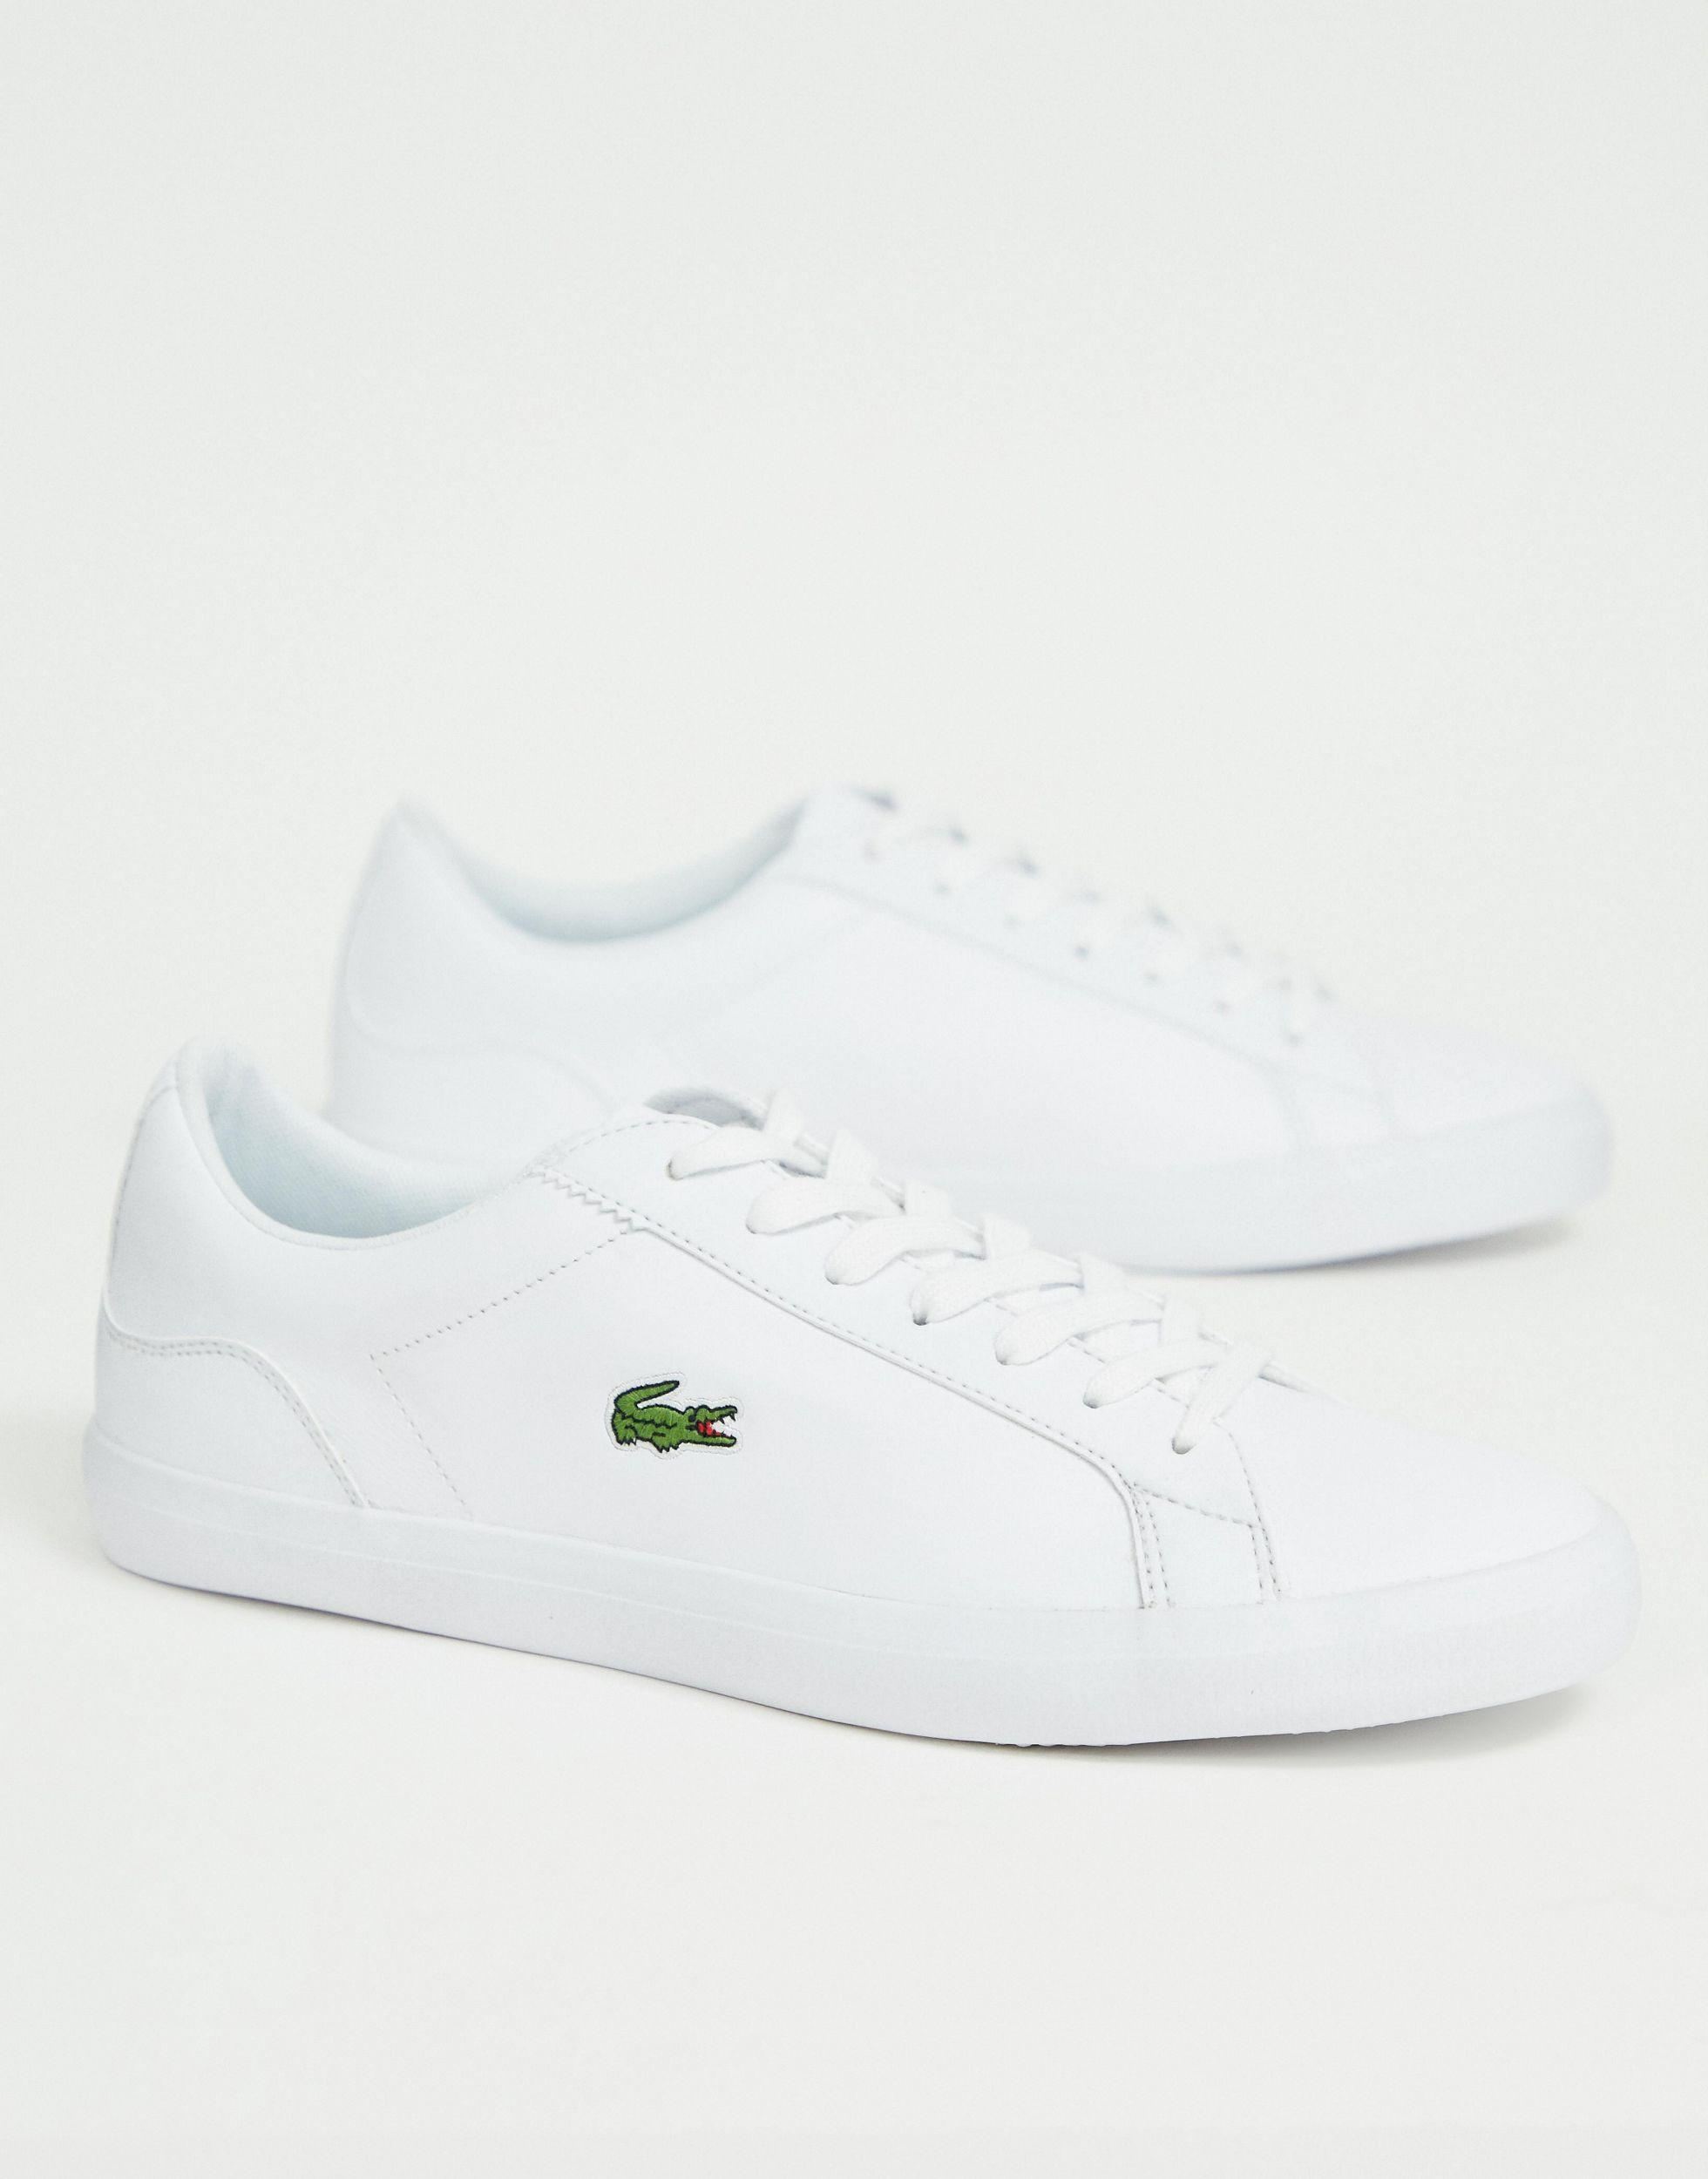 scotts lacoste trainers sale - 50% OFF